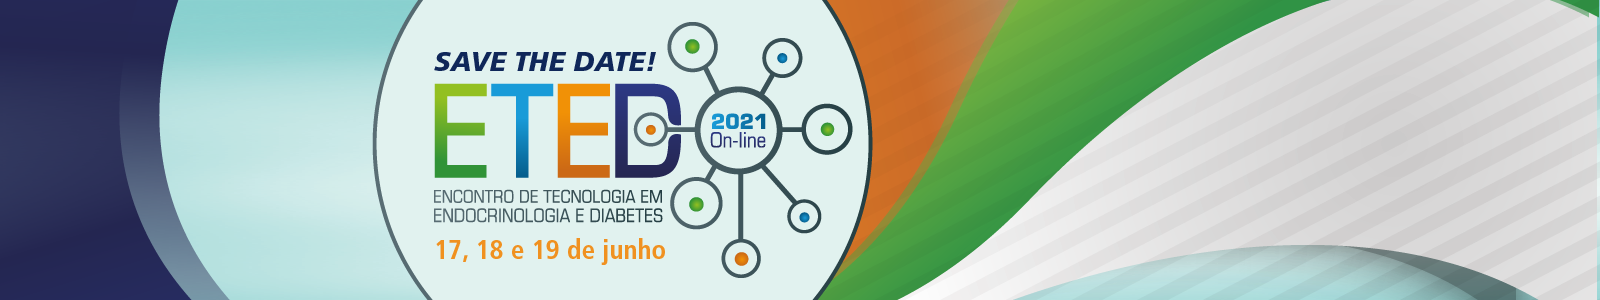 ETED2021-site-banner